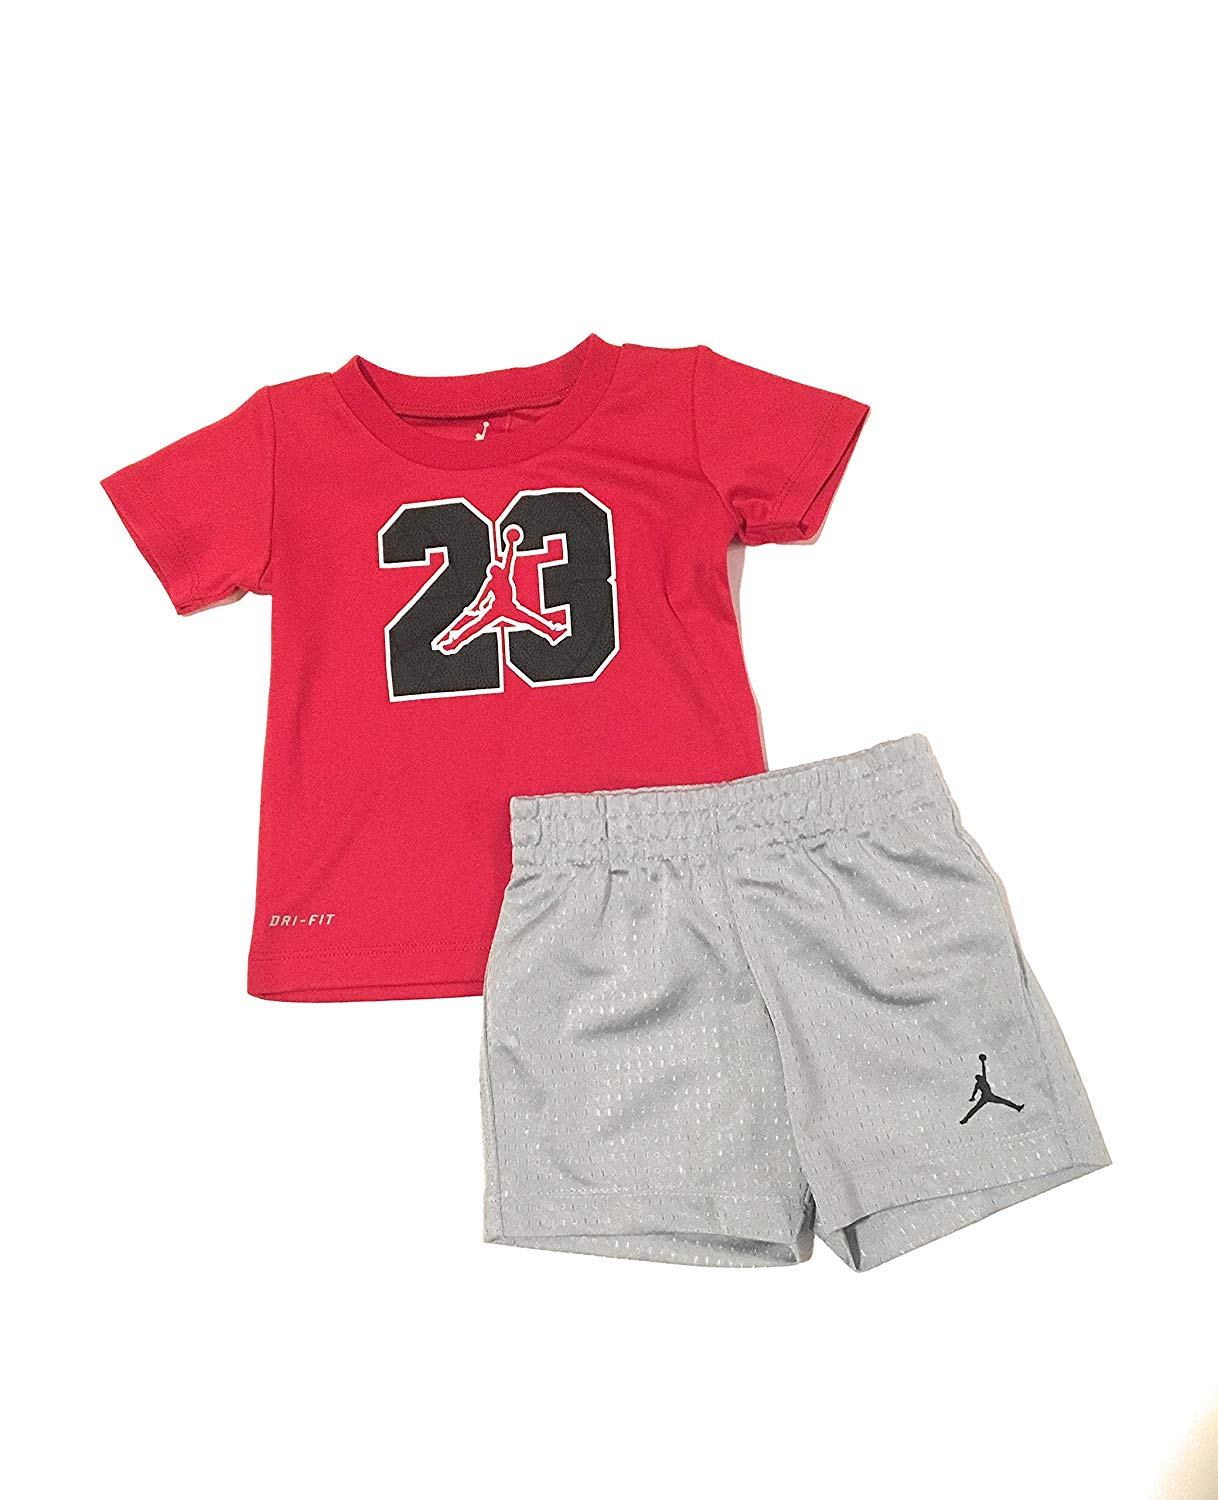 472f99d7a10 Get Quotations · Jordan Jumpman 23 Logo T-Shirt and Short Set Wolf Grey  Size 12 Months